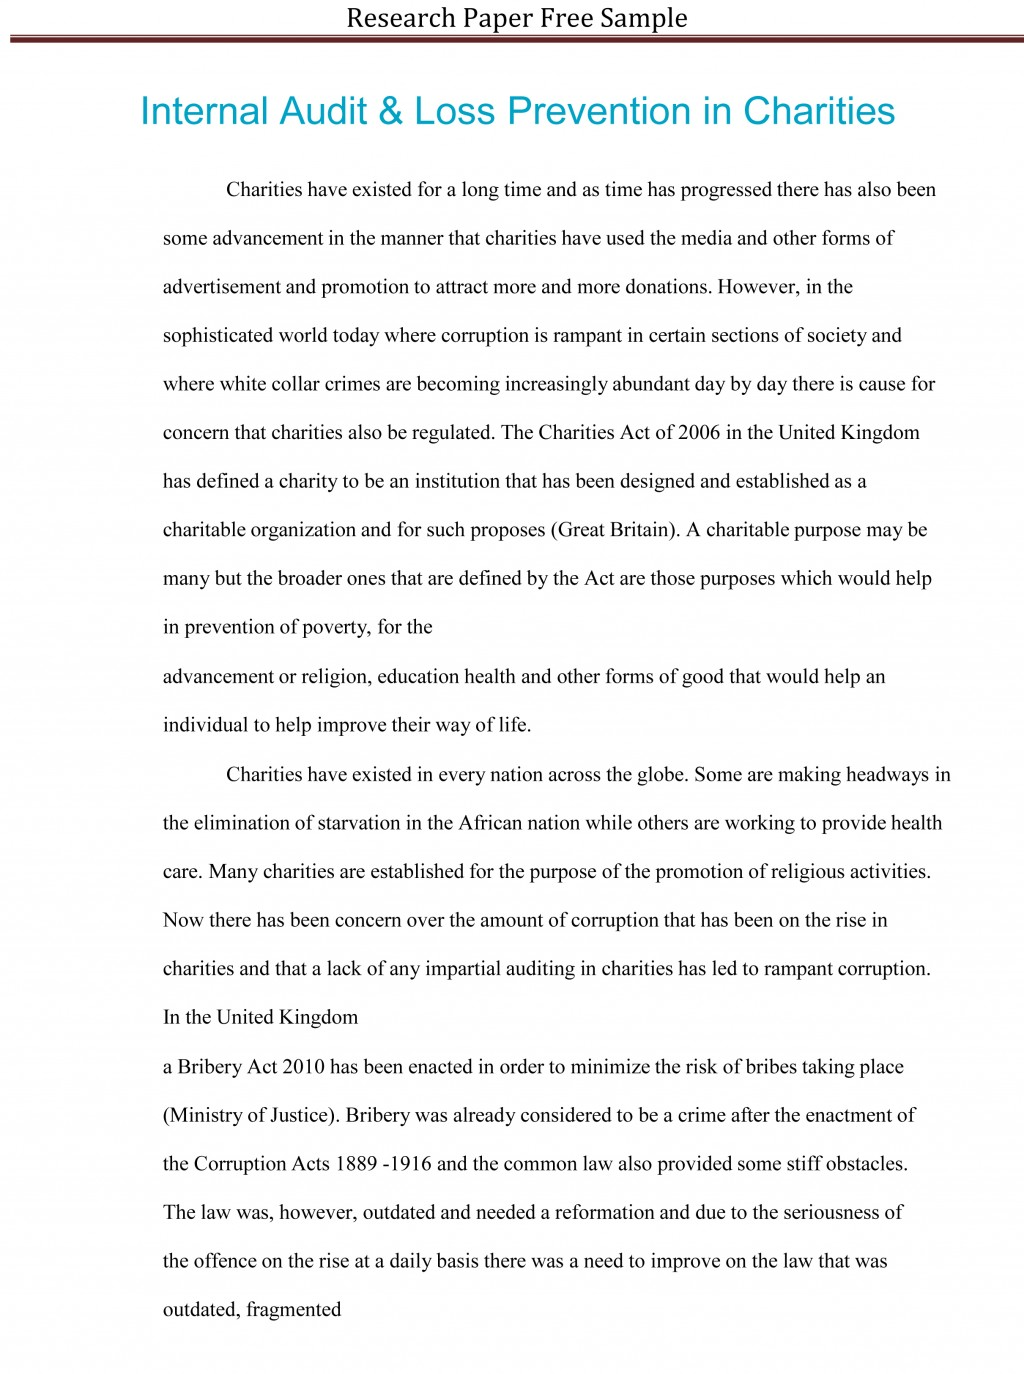 005 Apa Argumentative Research Paper Example Striking Format Essay Large